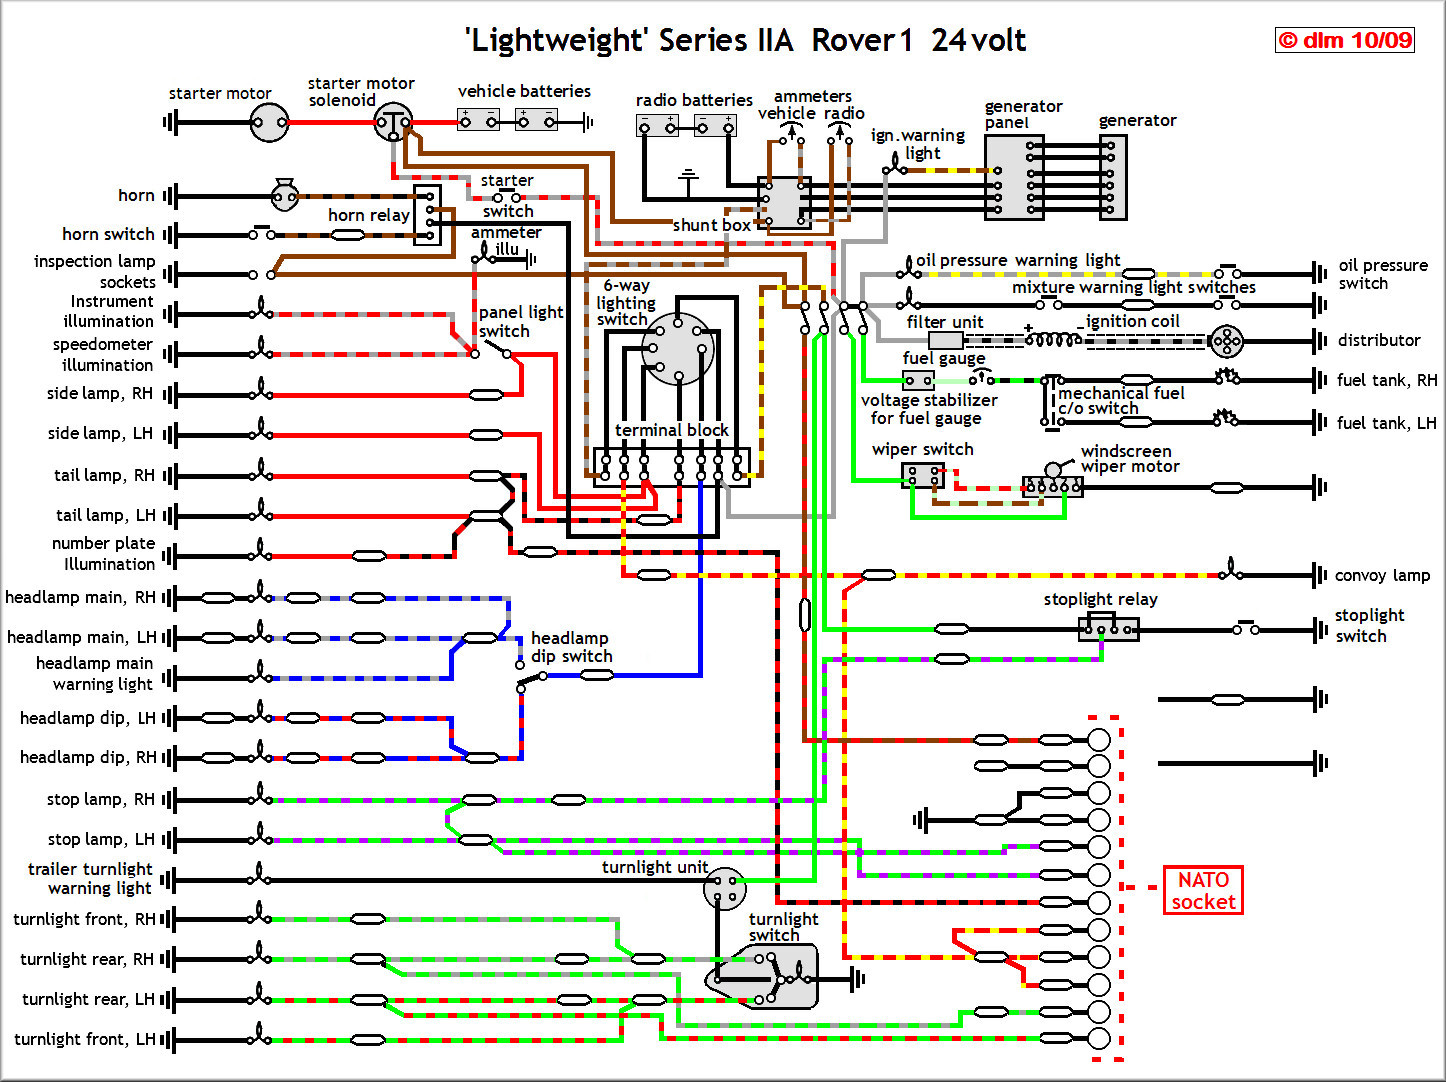 Rover Wiring Diagrams Data Schematic Diagram For Gfci And Light Switch Moreover A Land Lightweight Rh Co Uk Basic Electrical Simple